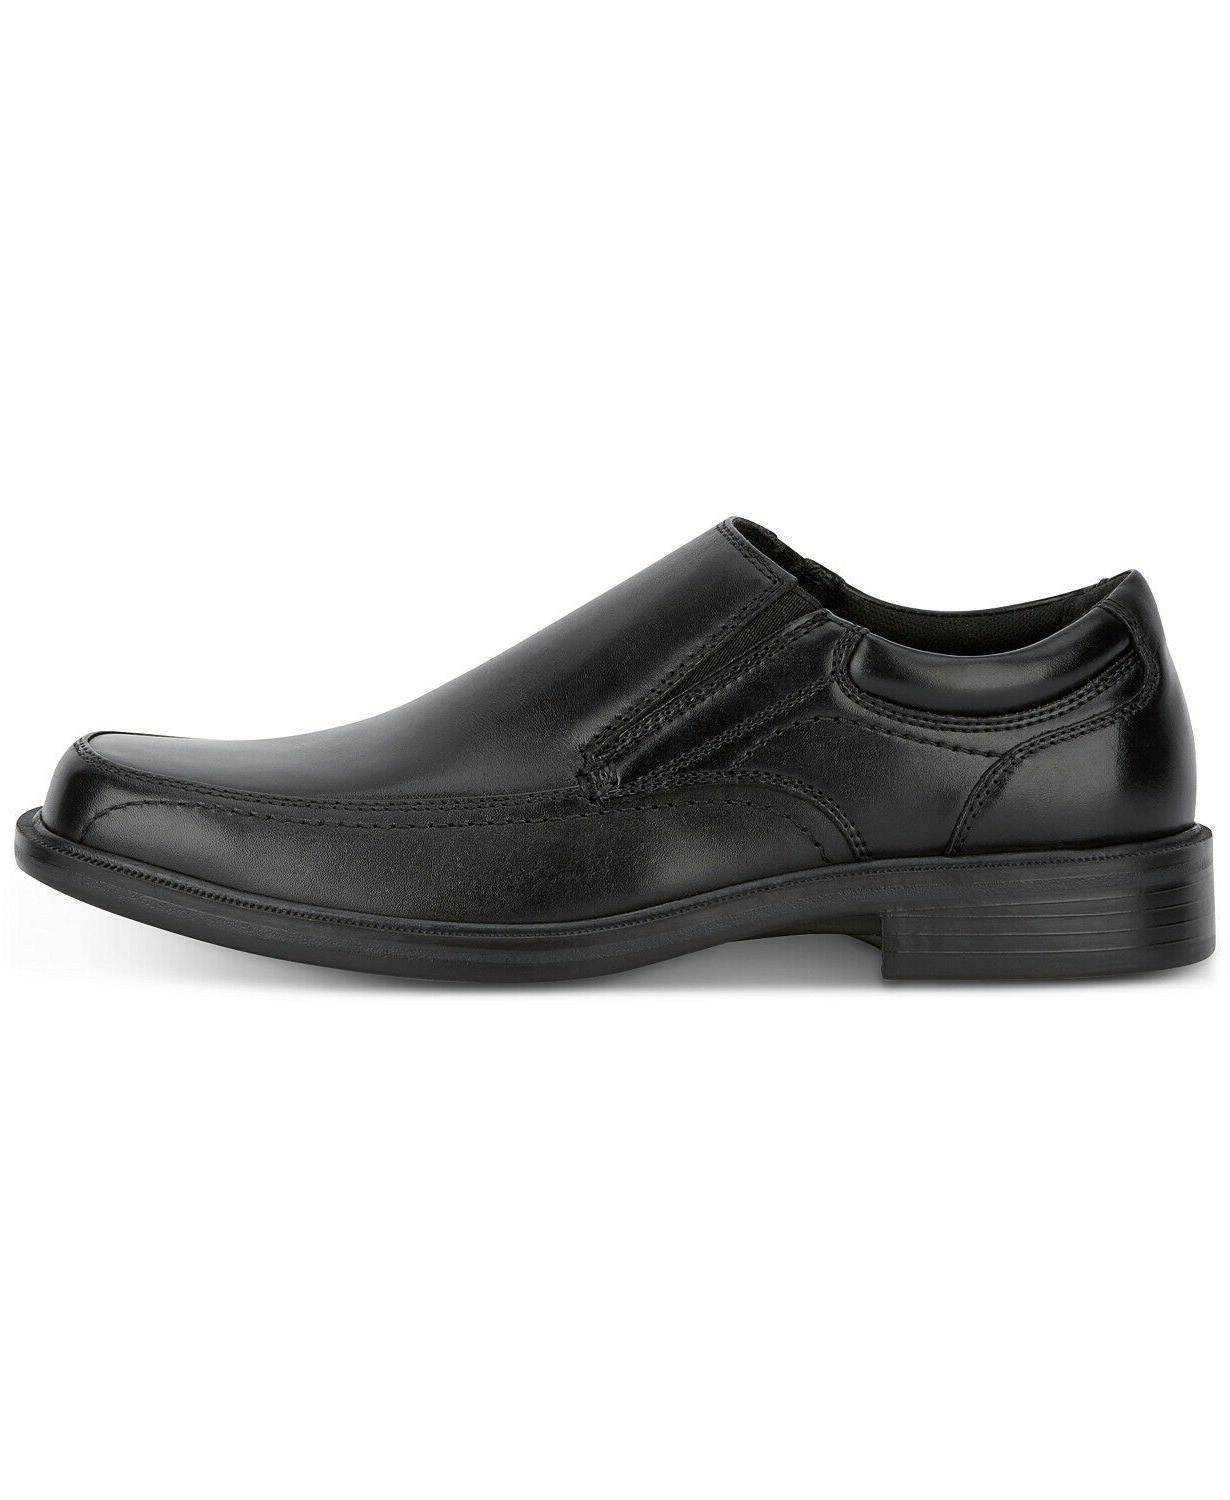 Dockers Edson Slip-On Bike Toe Loafer 11.5W